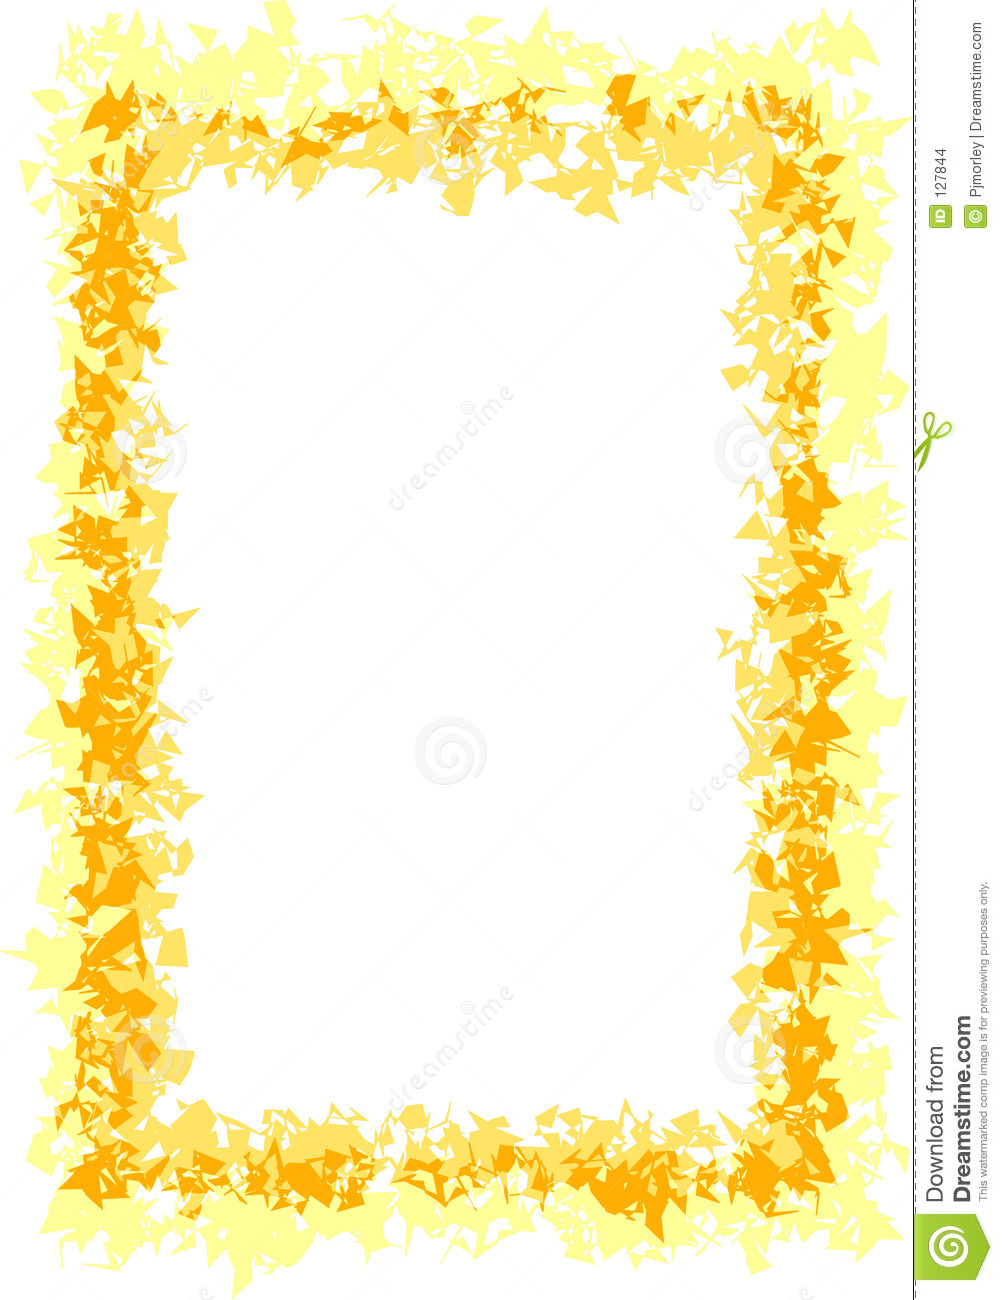 Border of yellow and gold, suitable for frames, invititation, menus ...